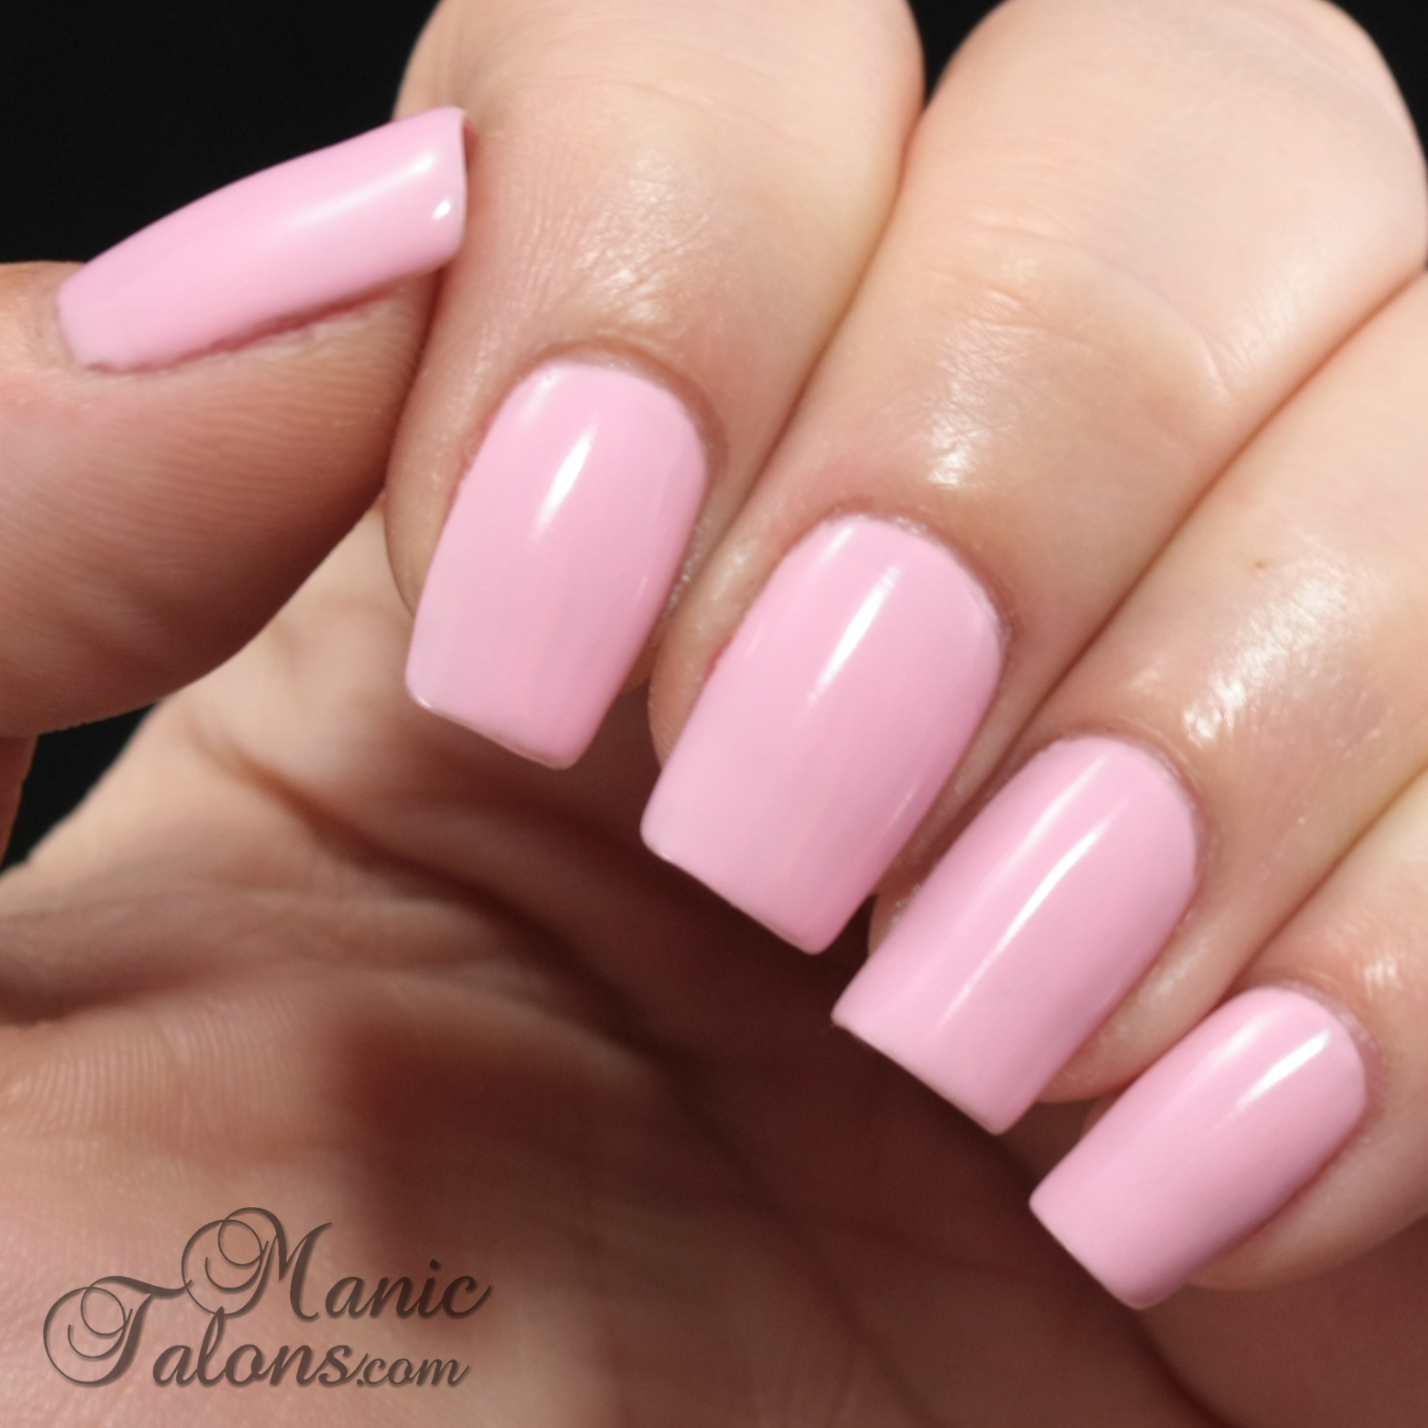 Daisy DUO Soak Off Gel Polish Sweet Romance Swatch